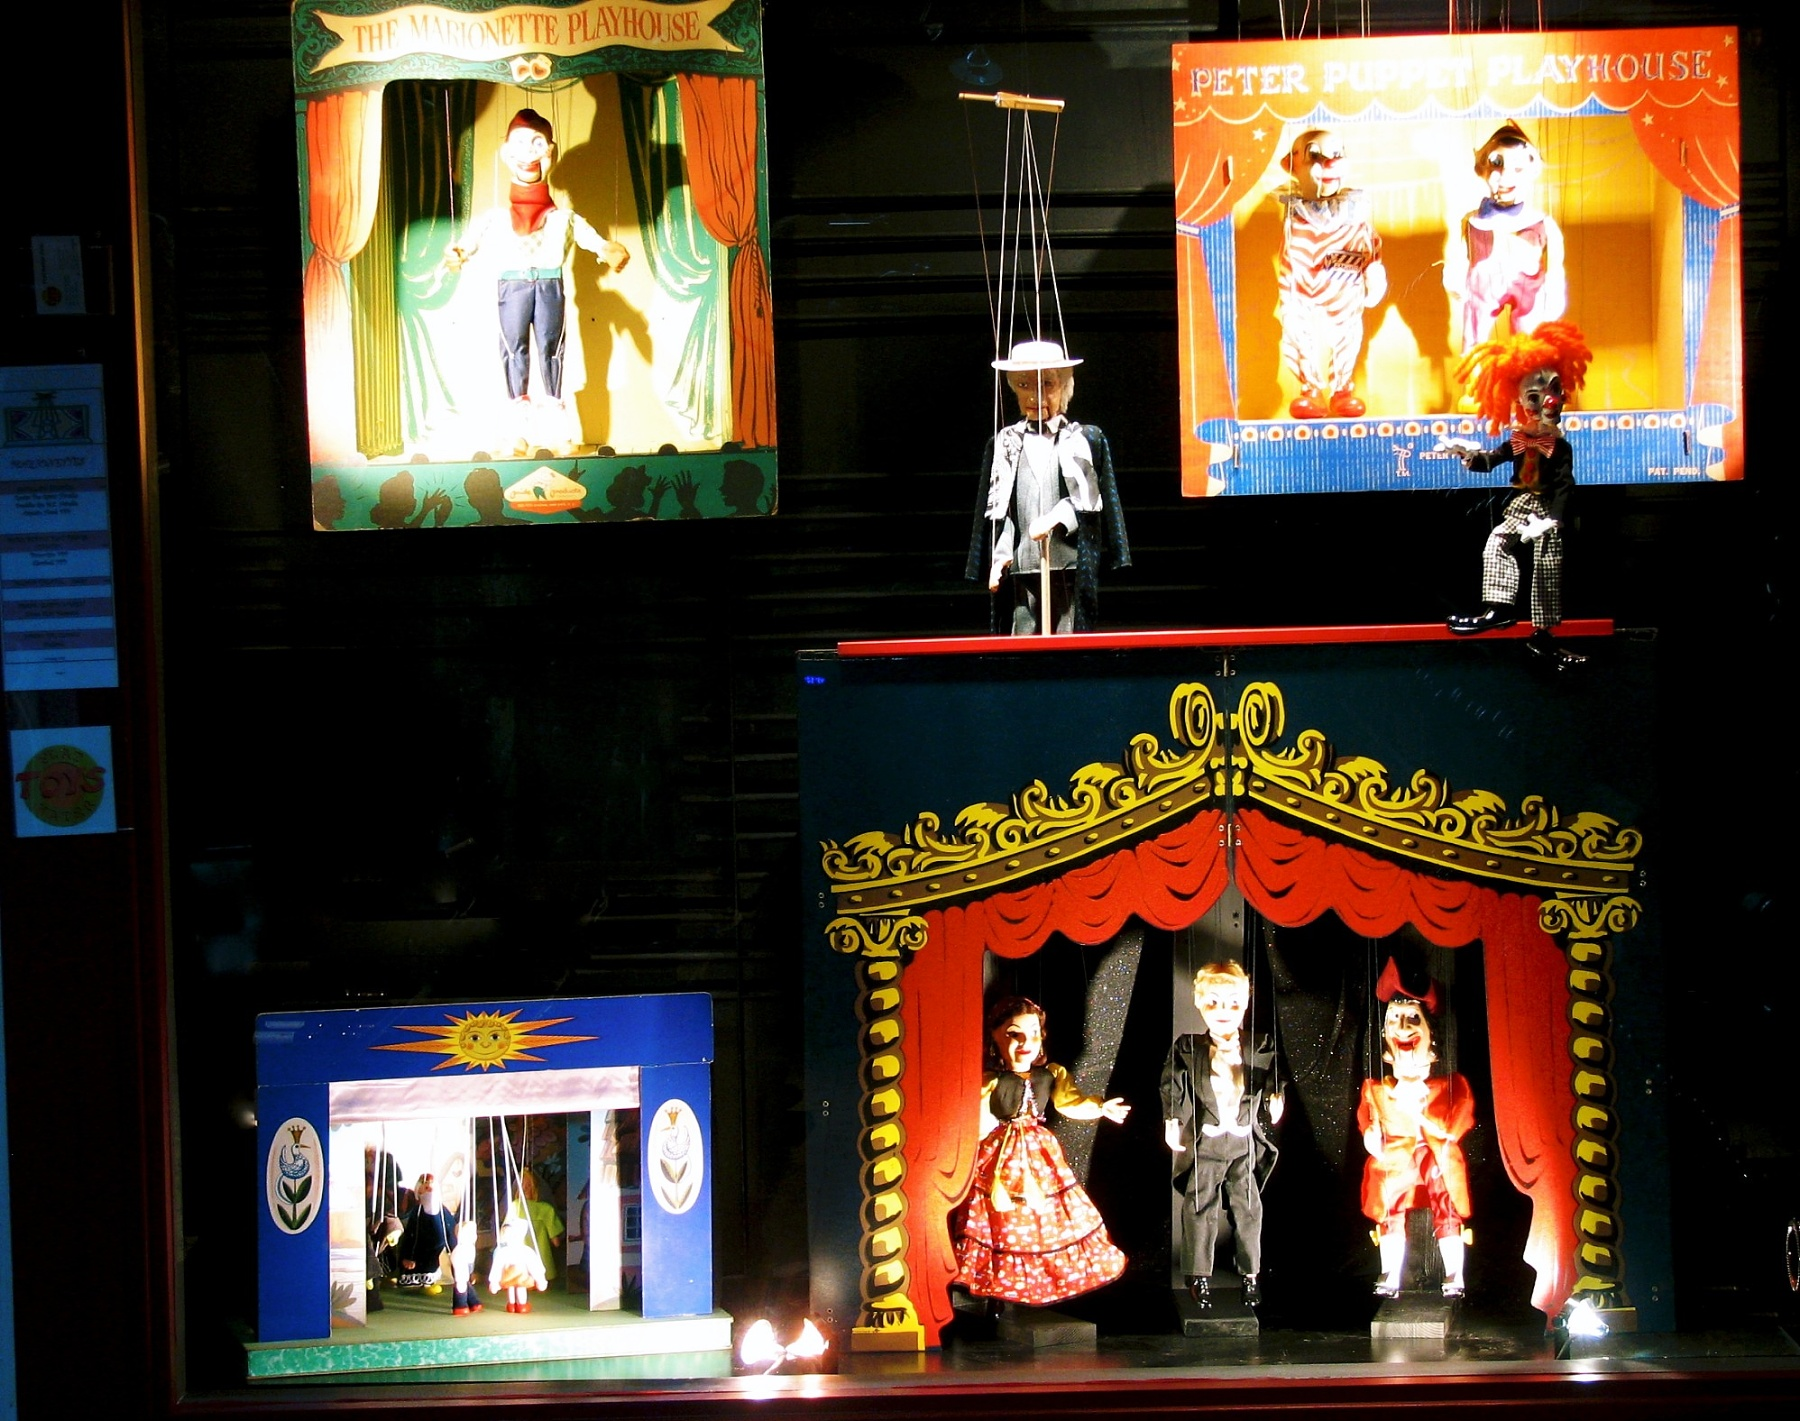 Marionette Display April 2011